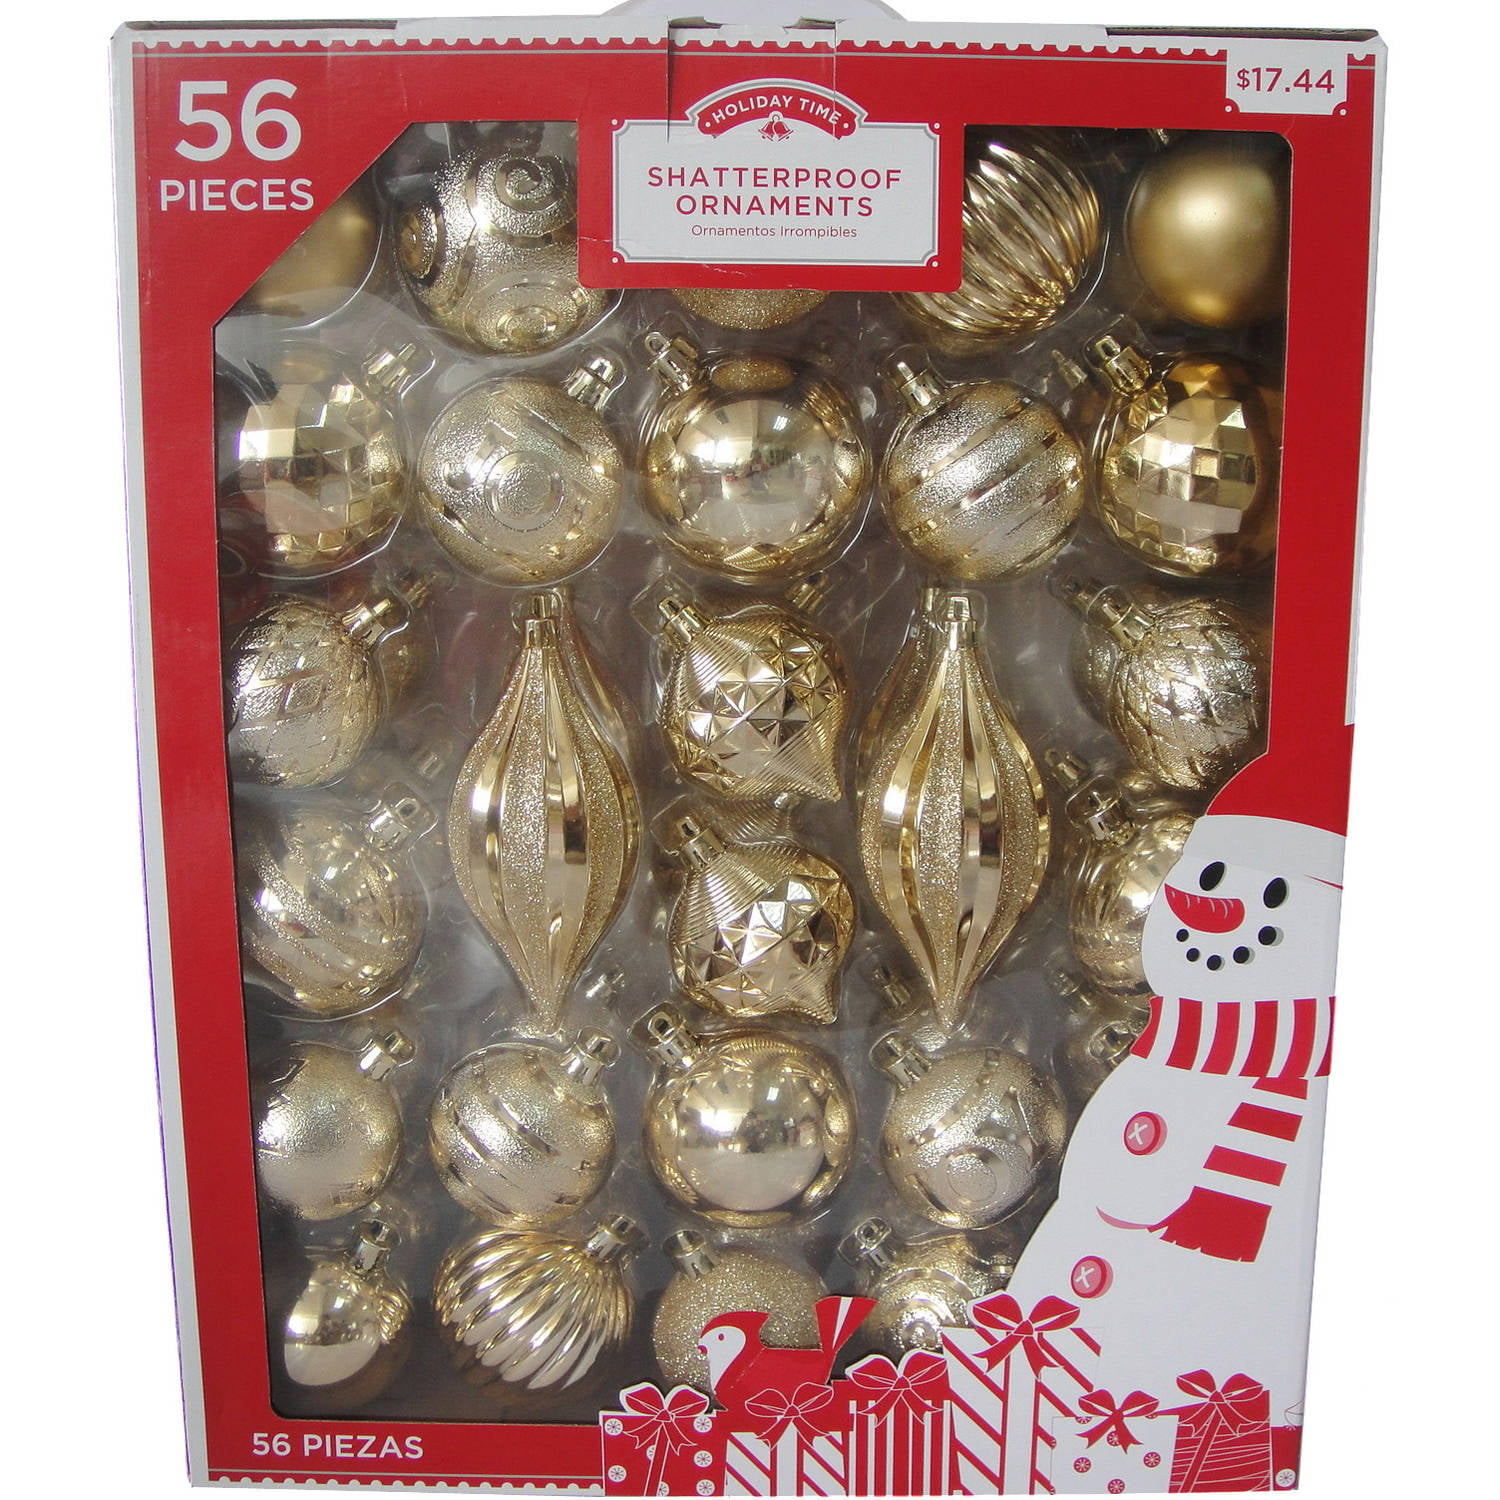 holiday time traditional shatterproof christmas ornaments set of 56 walmartcom - Walmart Com Christmas Decorations